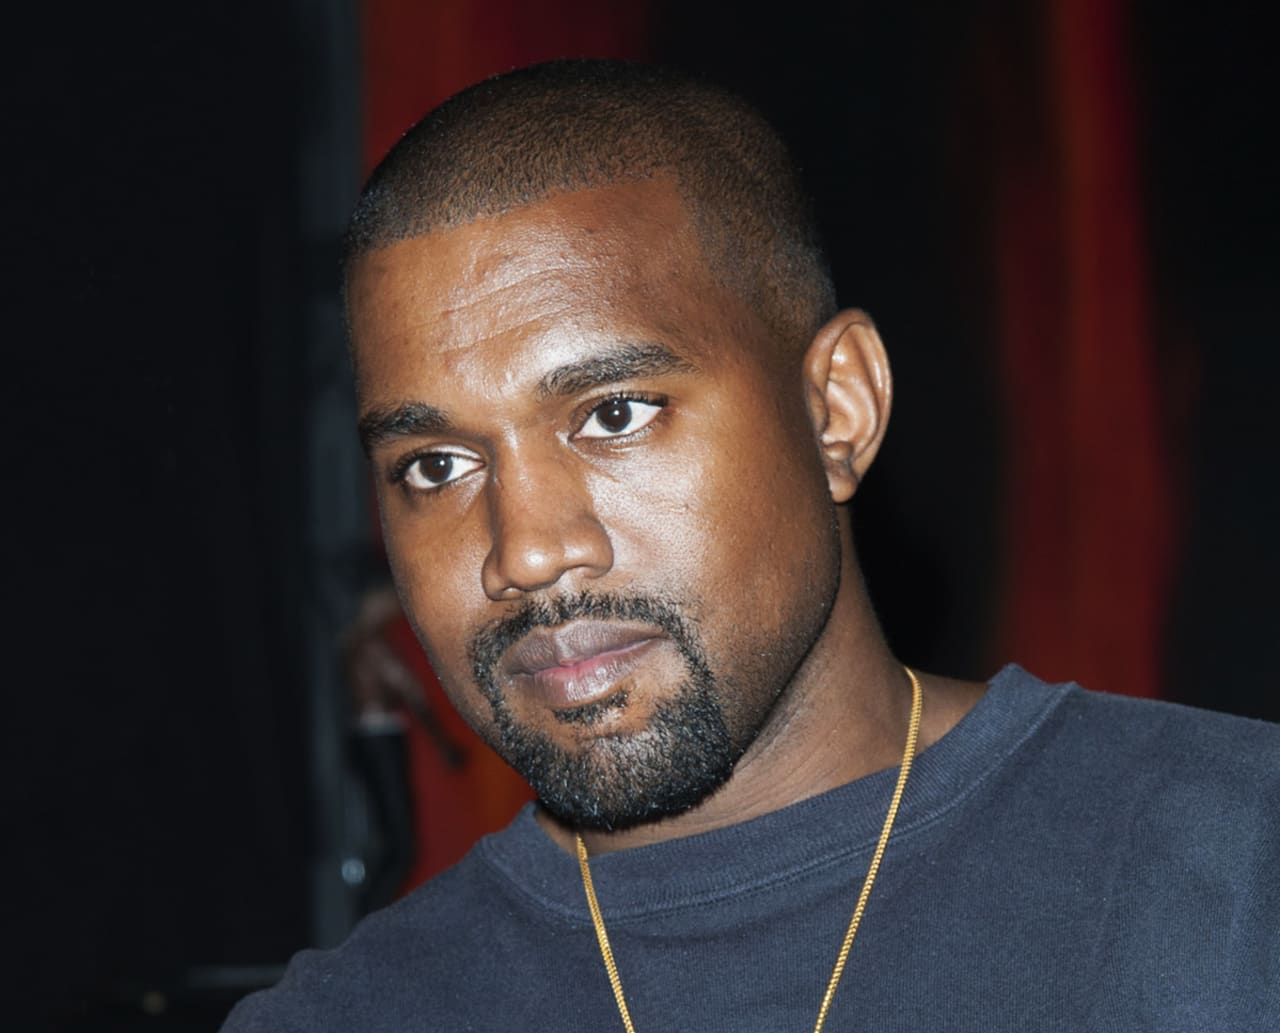 Kanye Wests New Album Jesus Is King Everything We Know